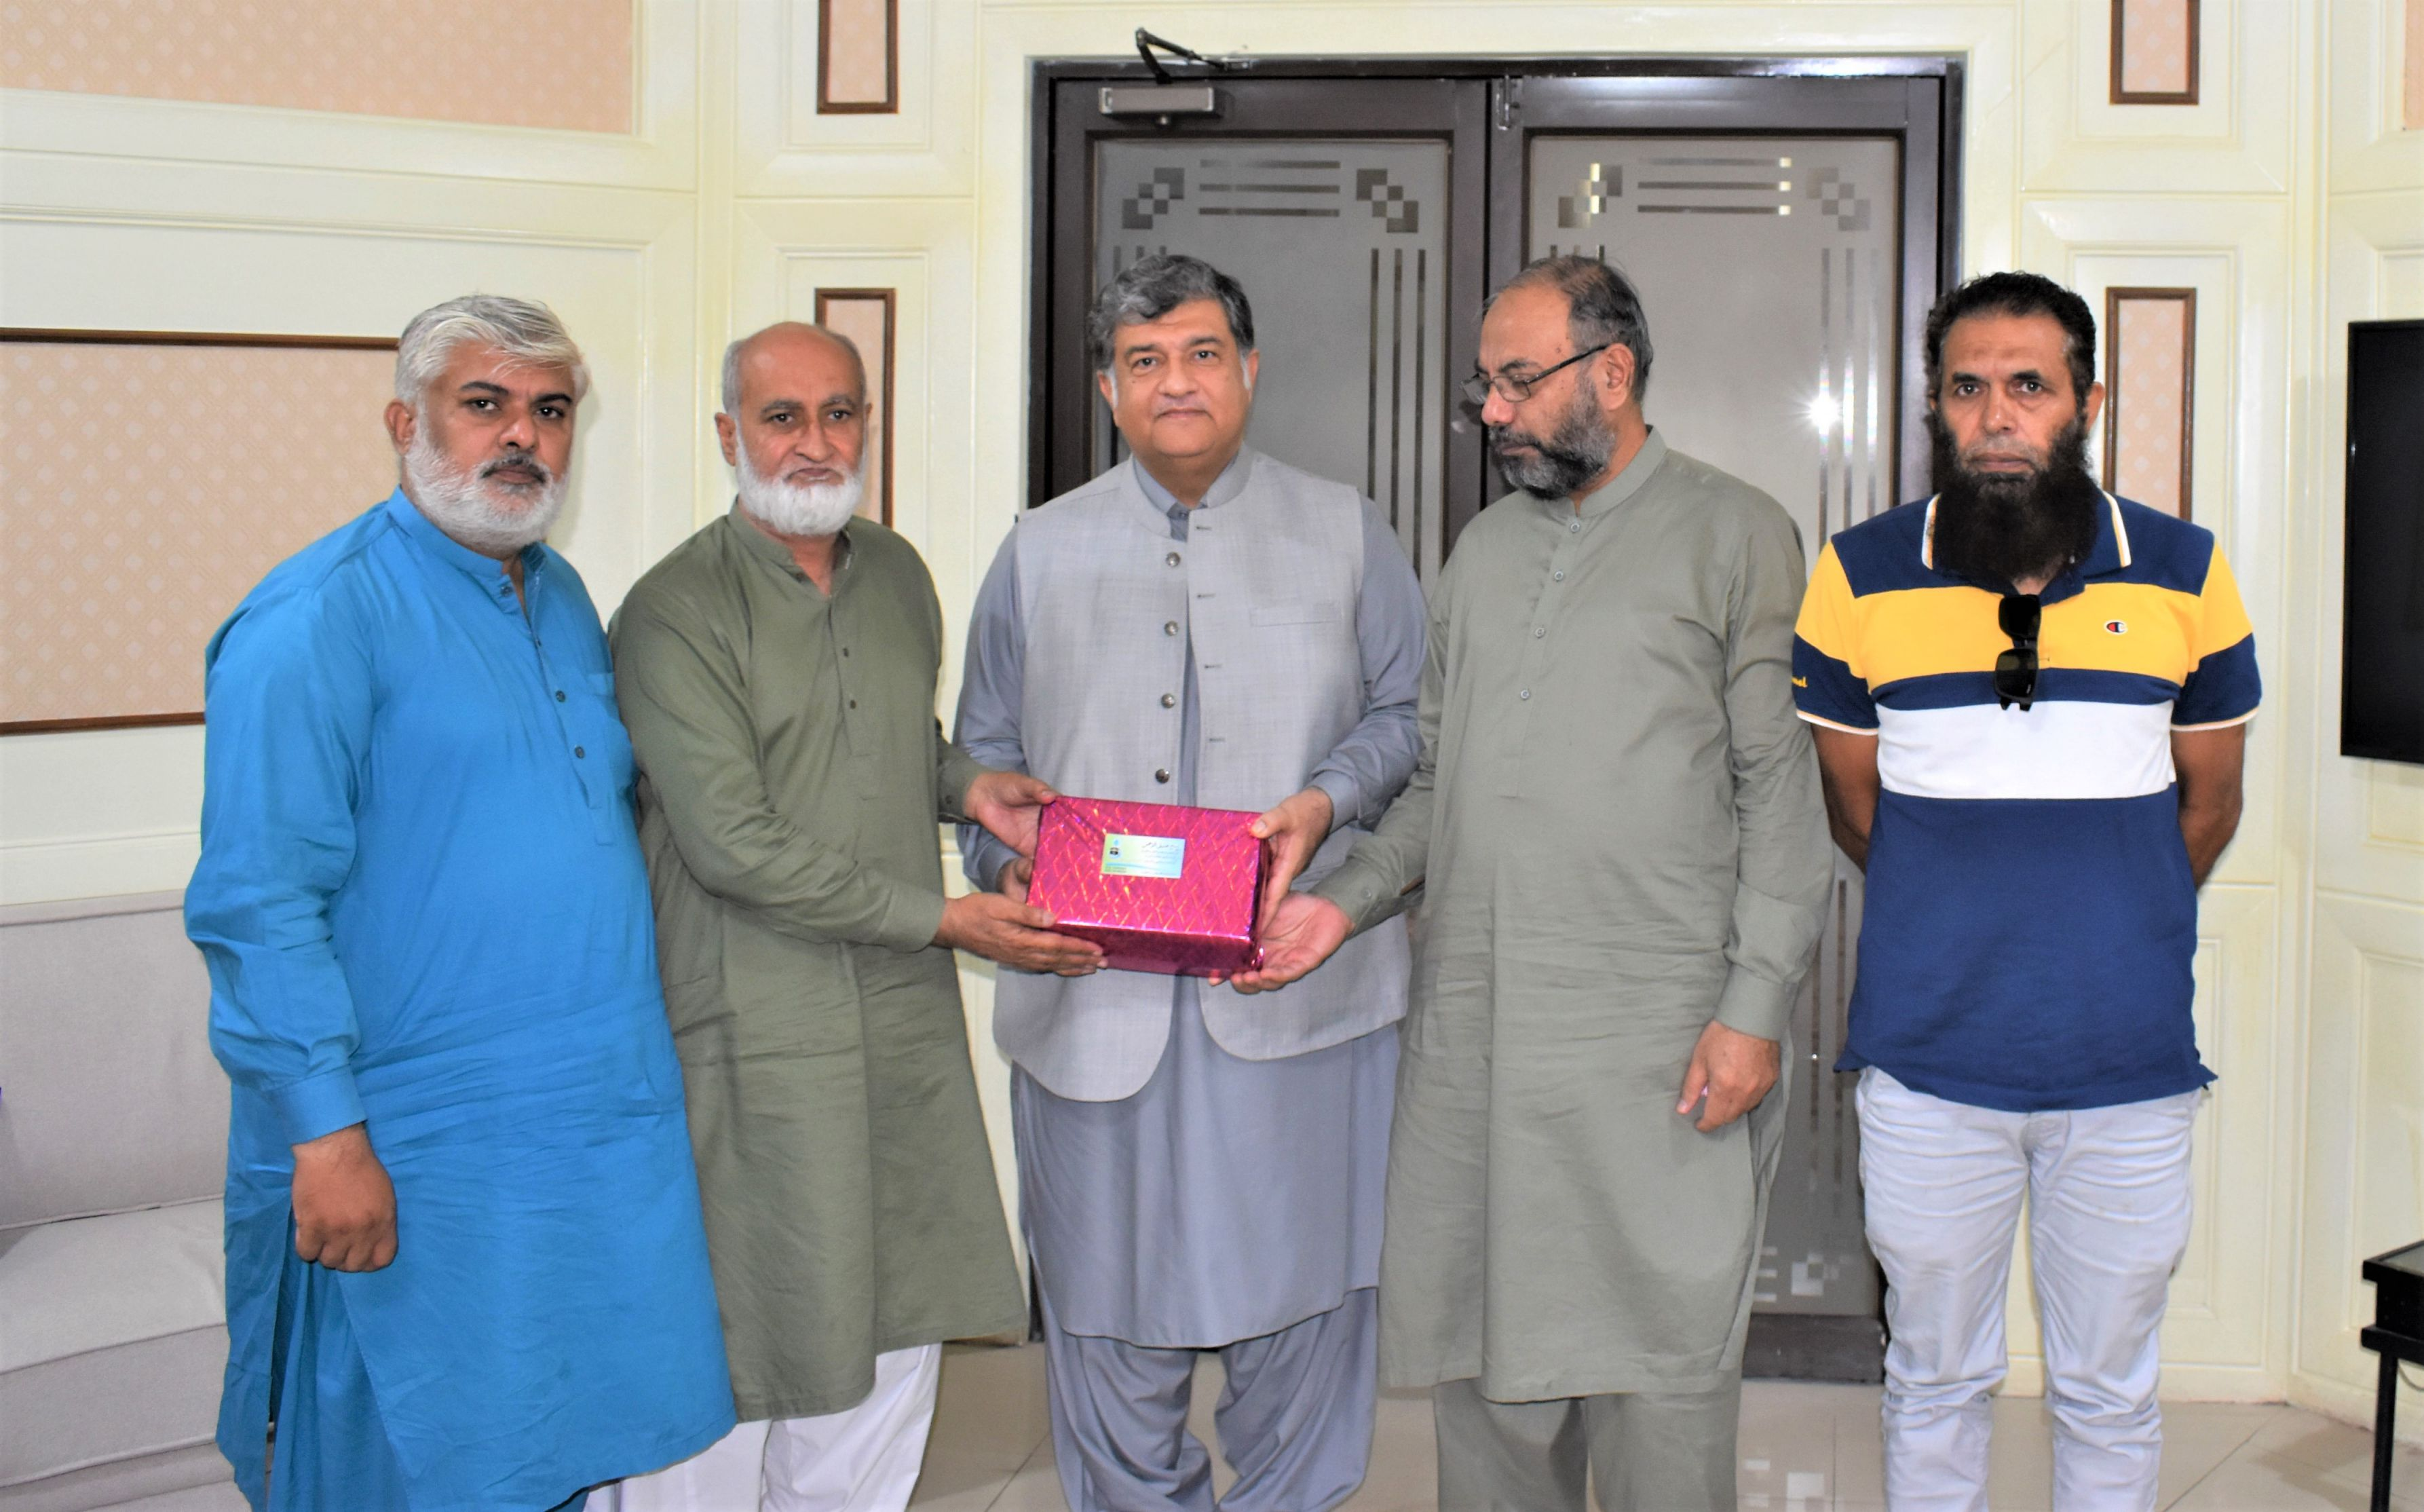 On October 20, 2021, A delegation led by Mr. Mian Mohammed Asif, former Additional IG police, KPK visited Sialkot Chamber of Commerce & Industry and extended heartiest felicitations to President, SCCI on assuming the charge as Office Bearer of SCCI.